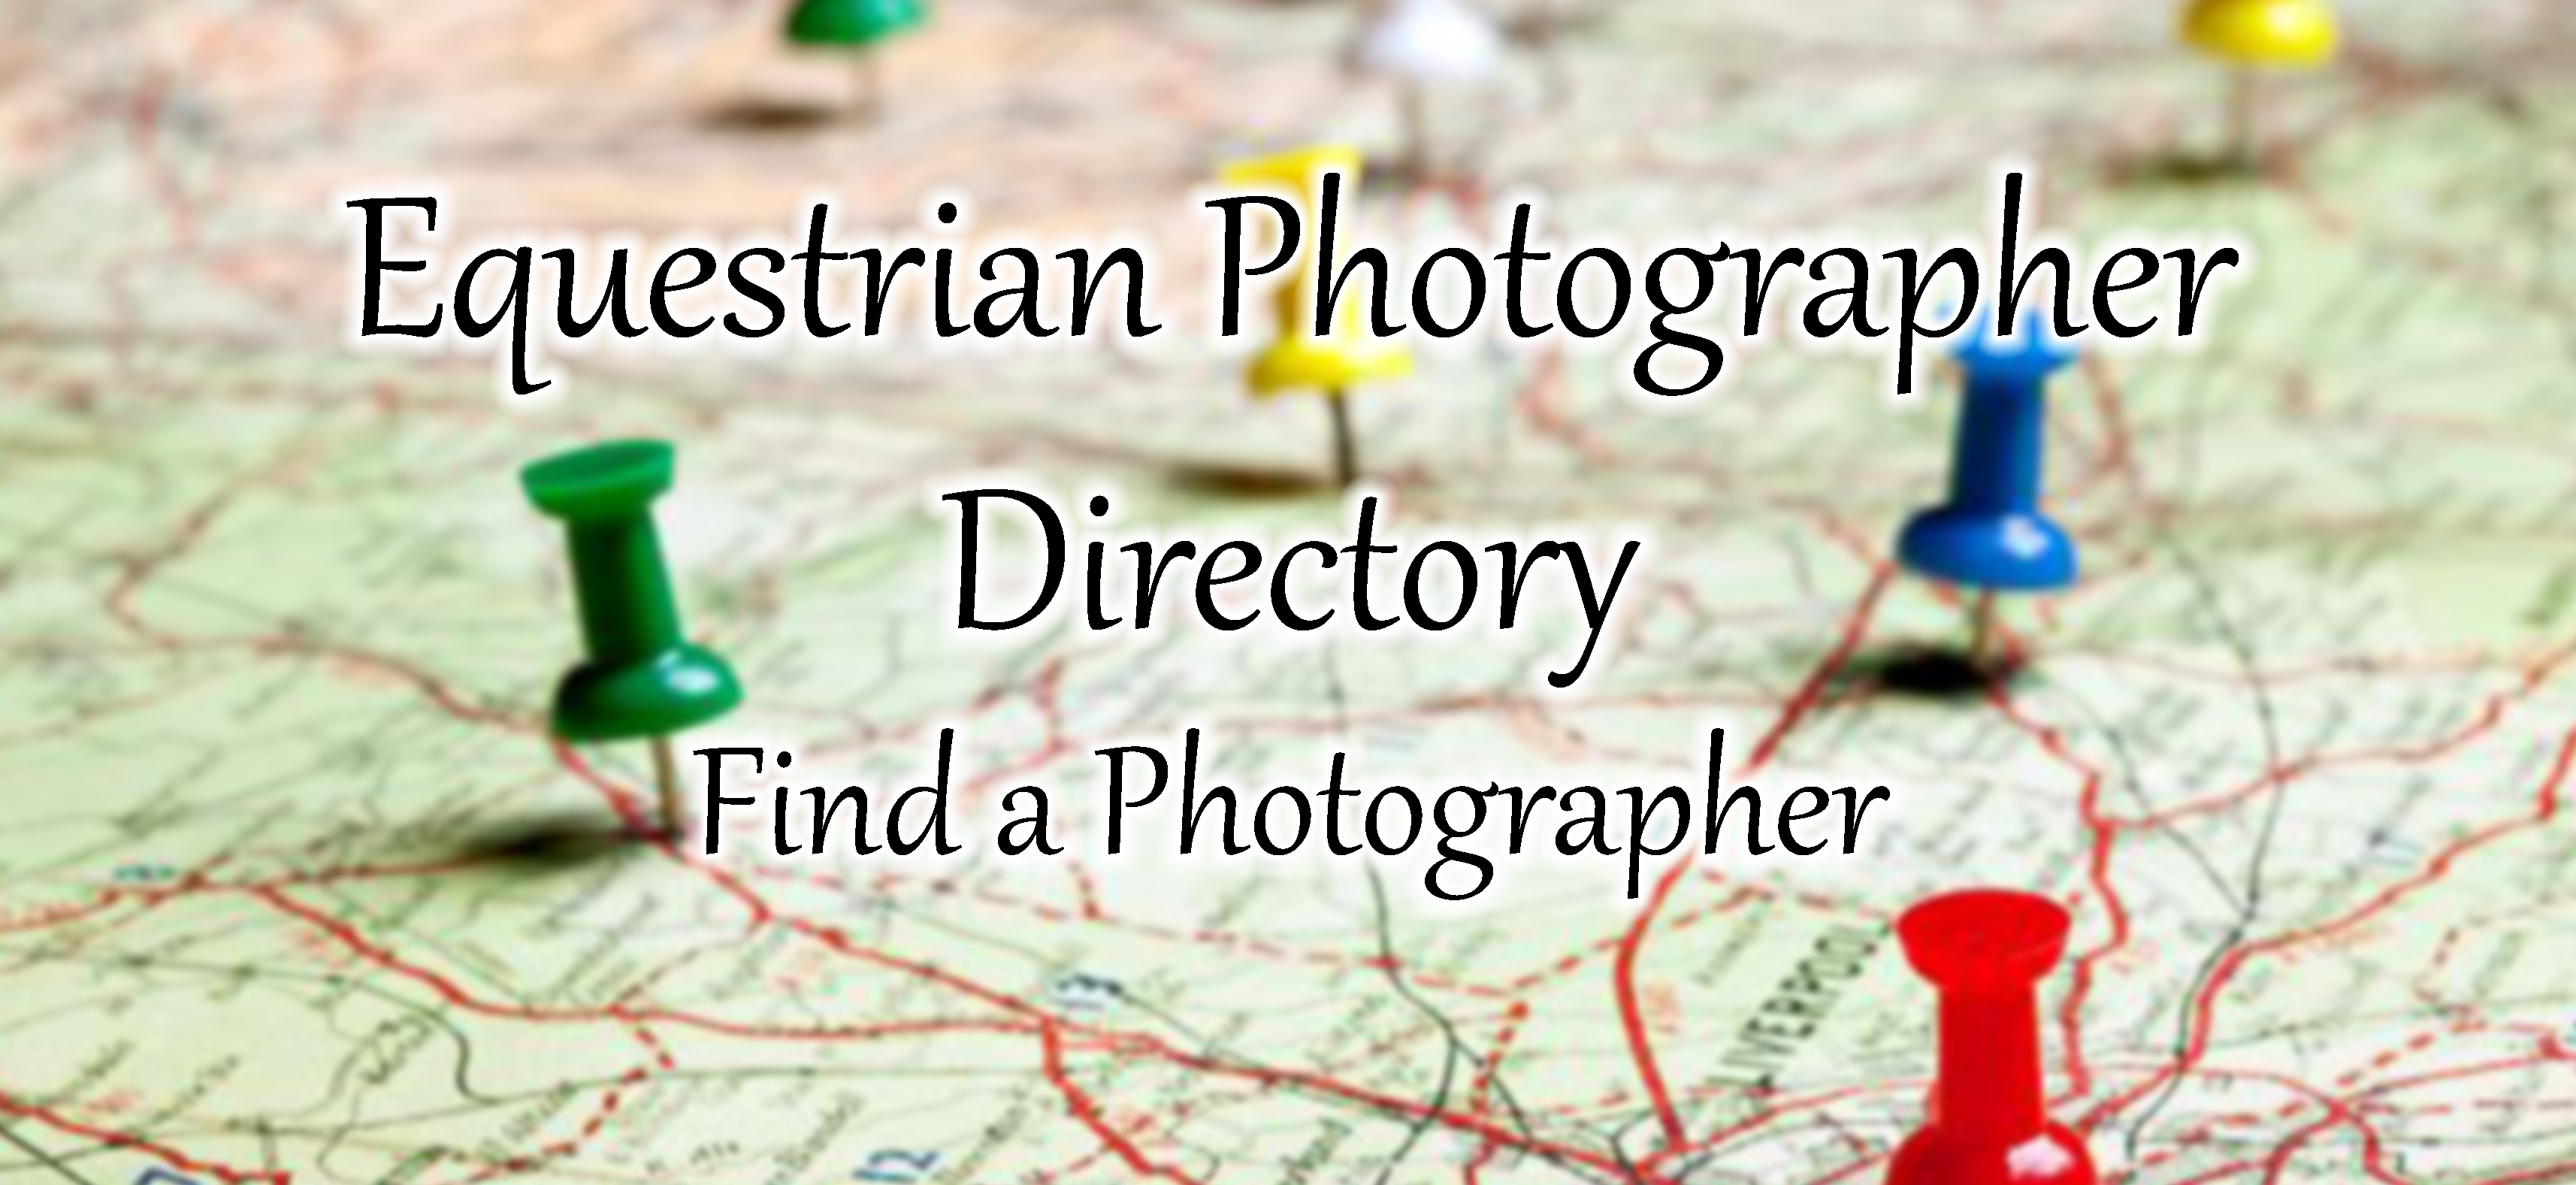 Equestrian Photographer Directory